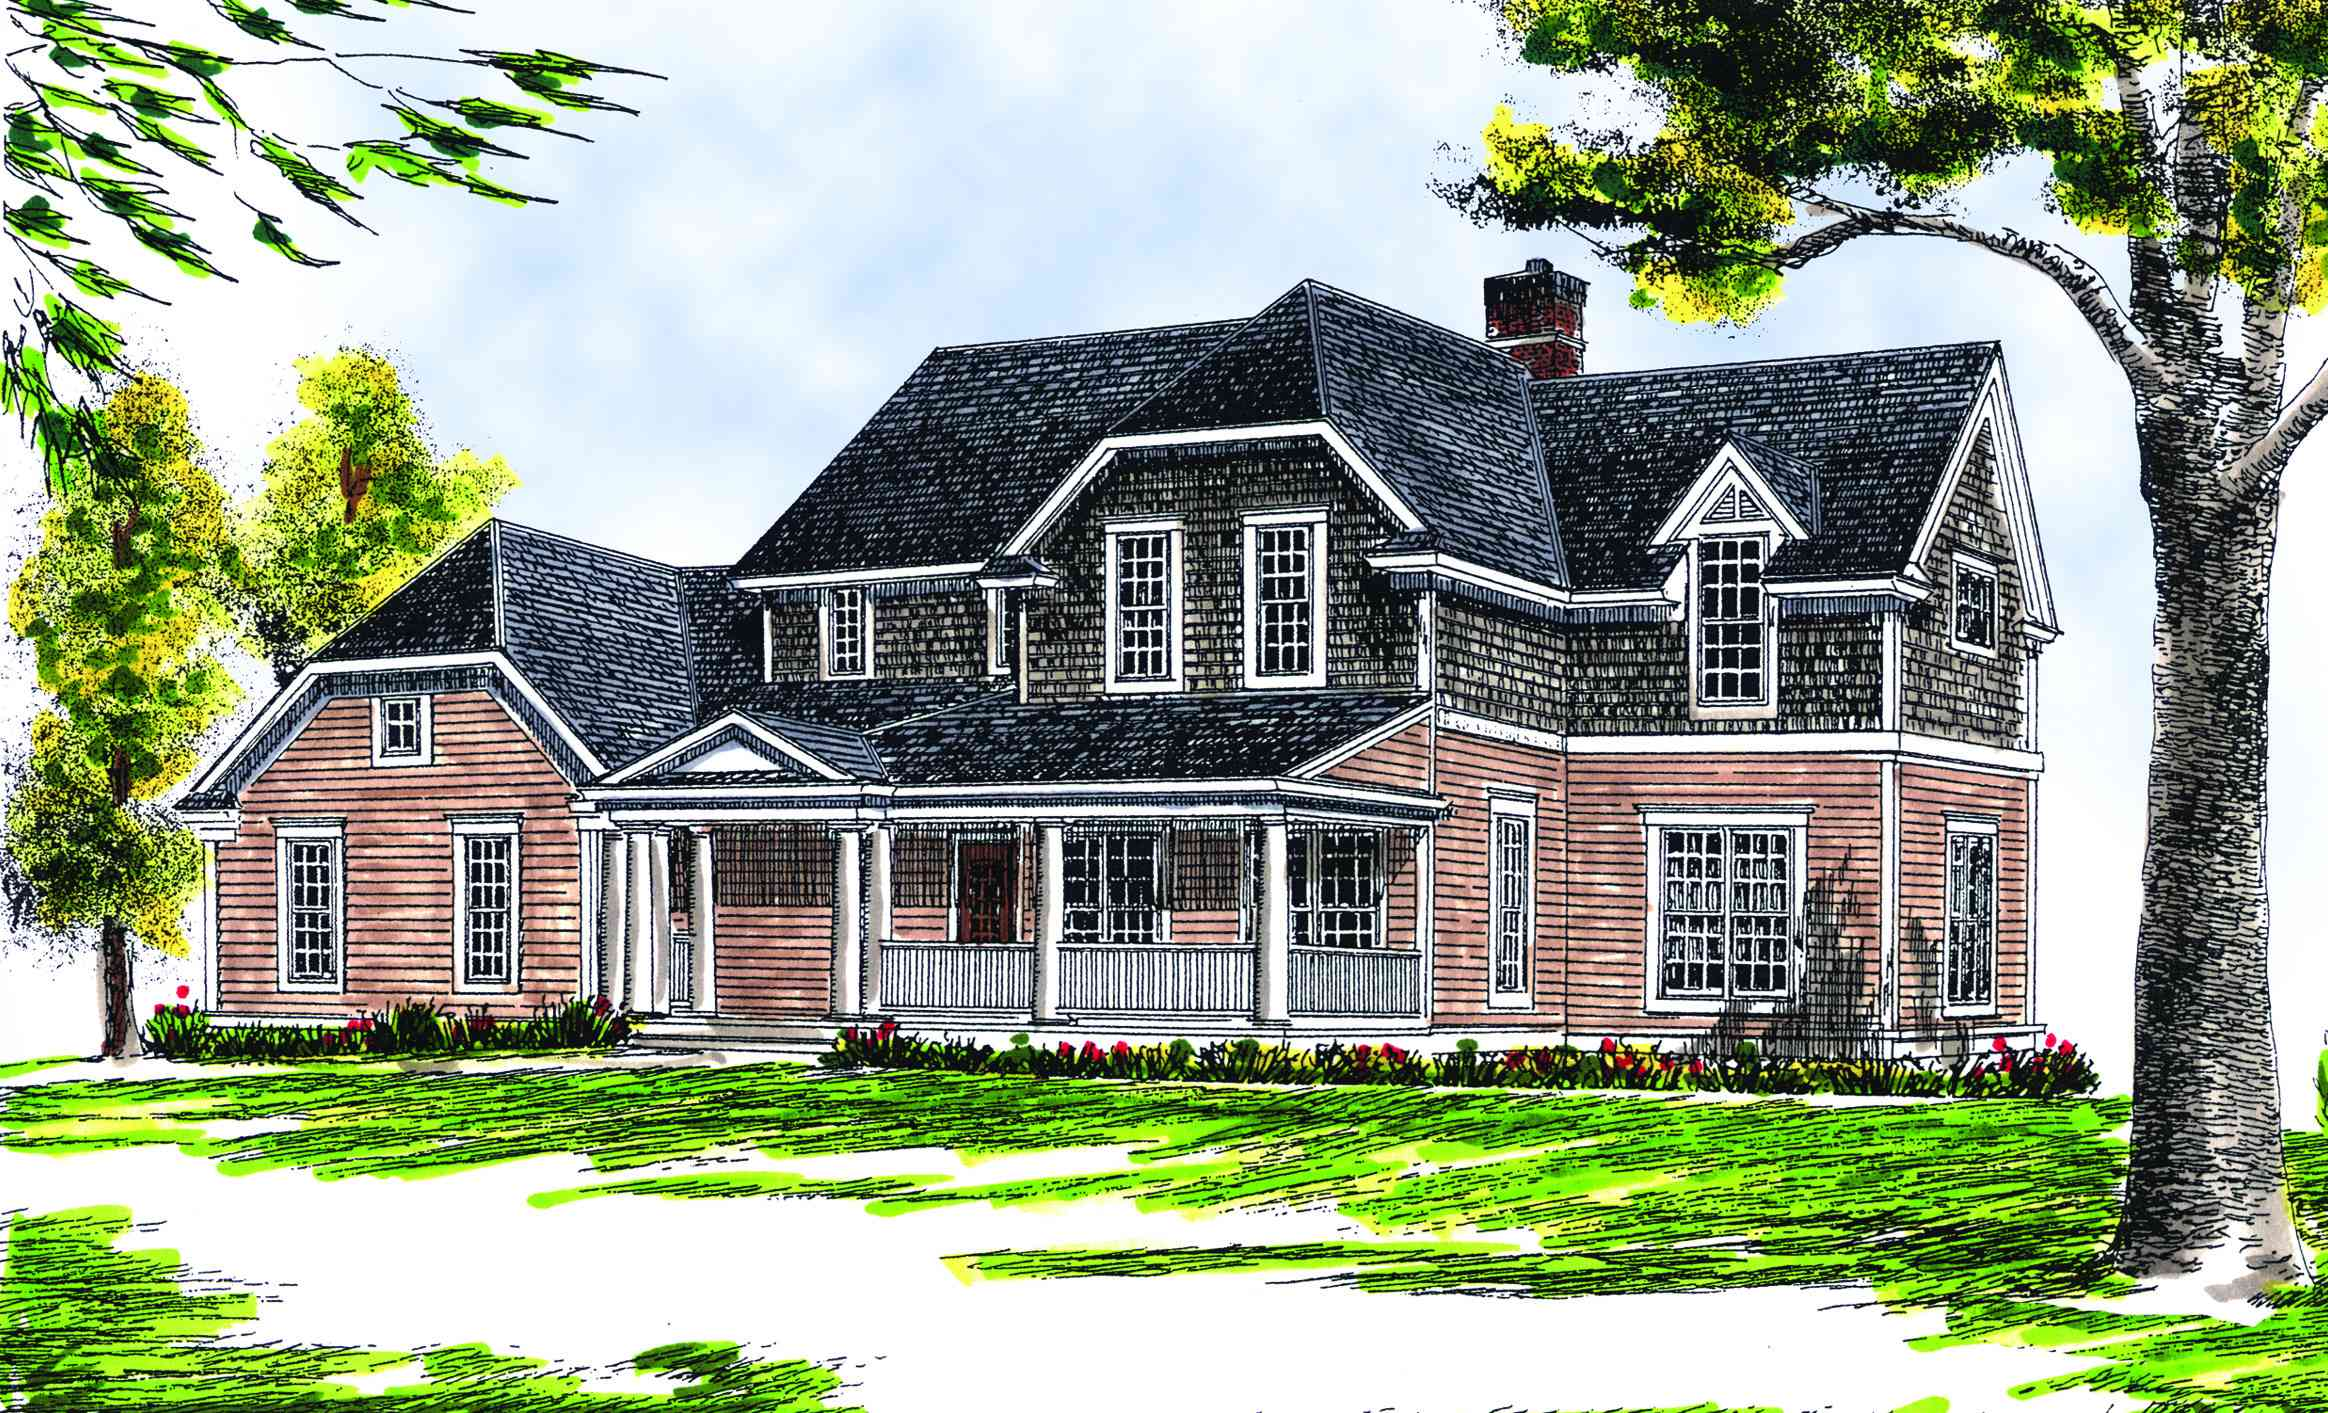 Four bedroom farmhouse plan 89112ah architectural for Architectural designs farmhouse